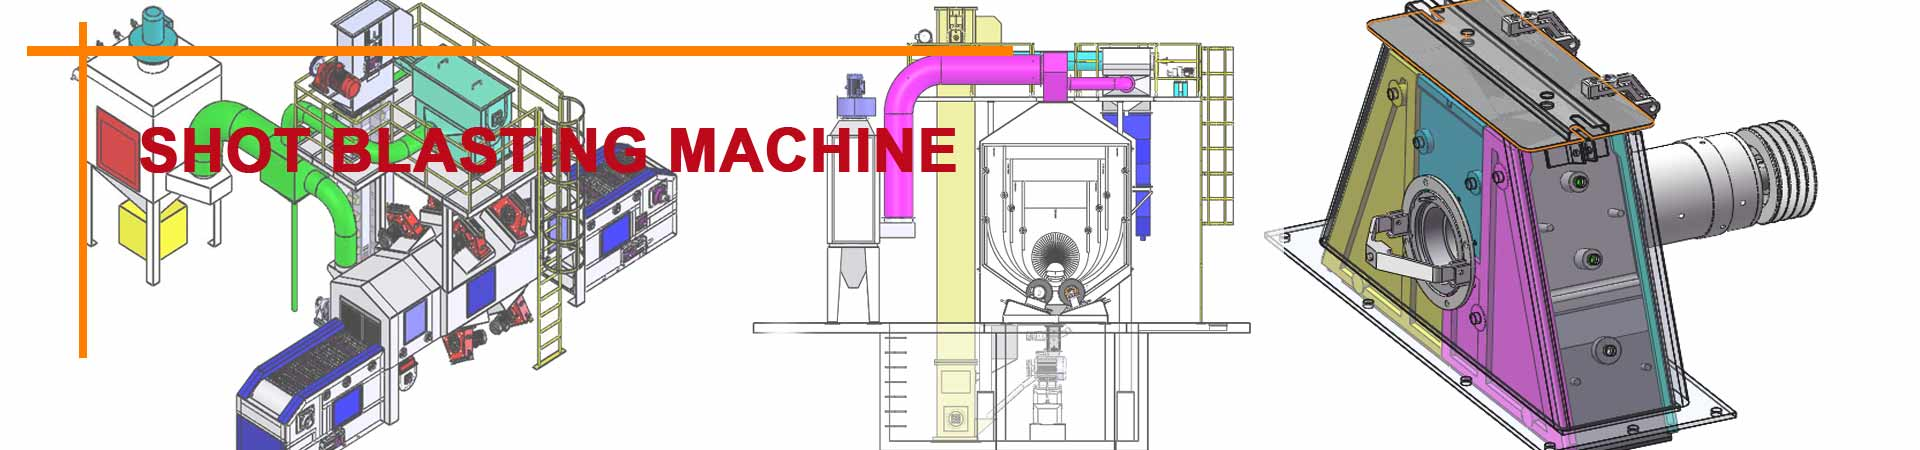 qinggong shot blasting machine